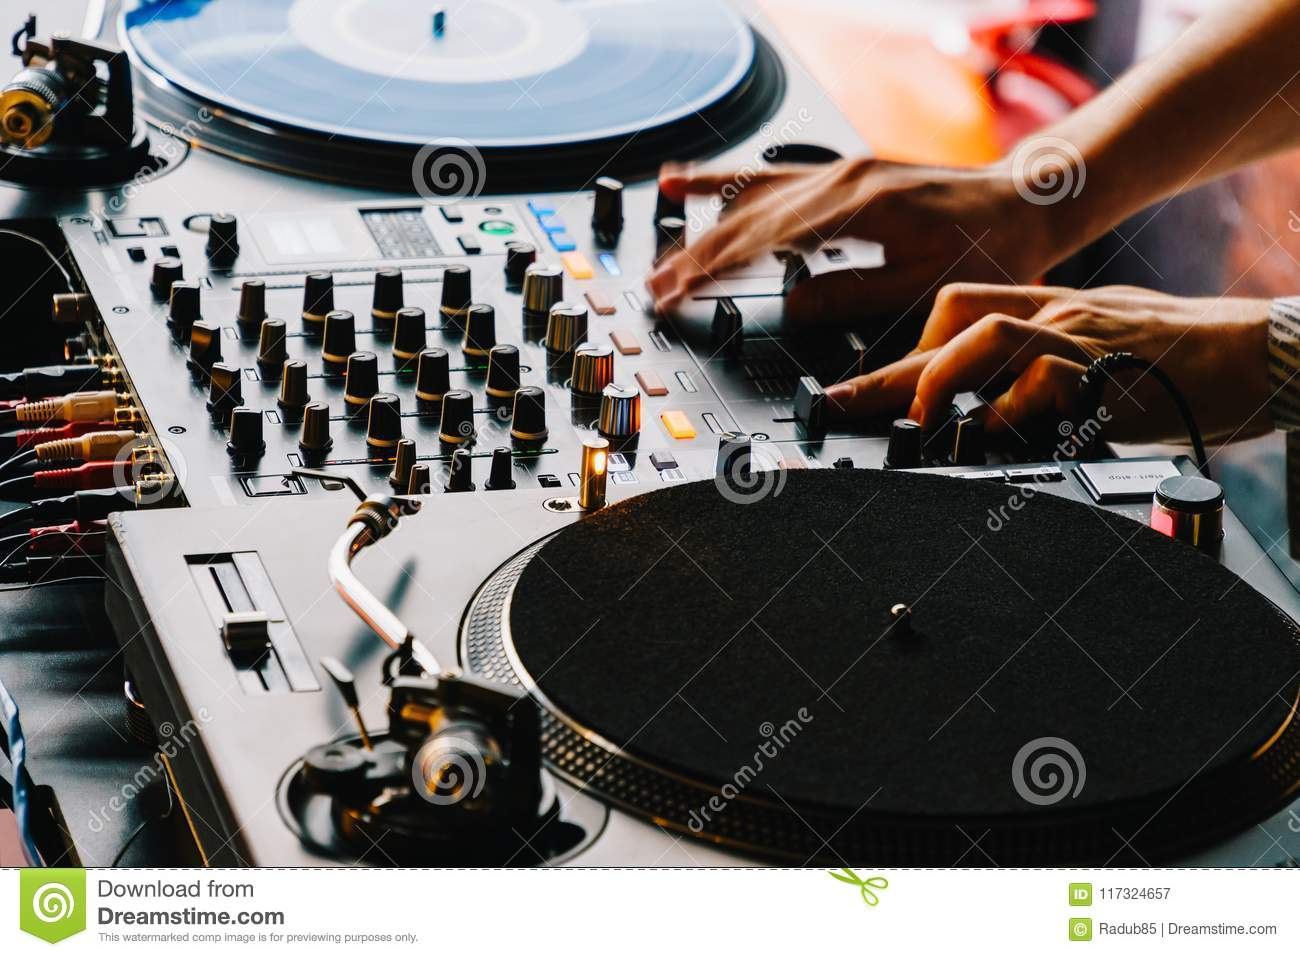 DJ Equipment Deck With Music Track Control And Mixer At Club Party